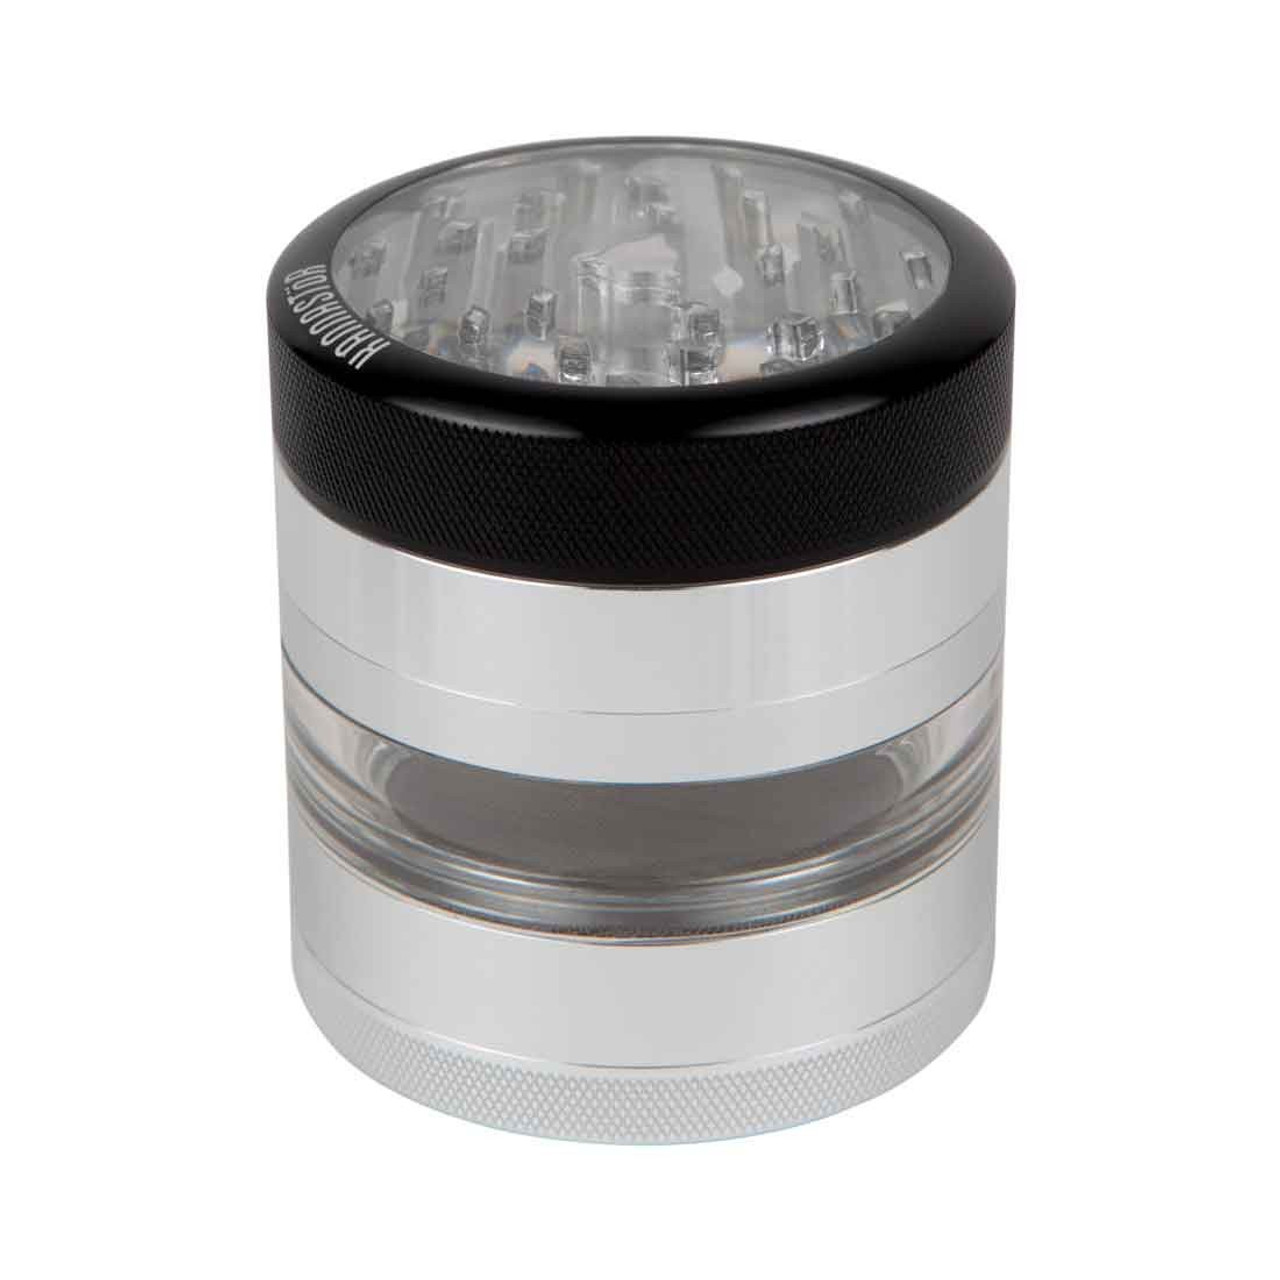 Kannastör 4pc Multi Chamber Grinder w/ Clear Top + Jar